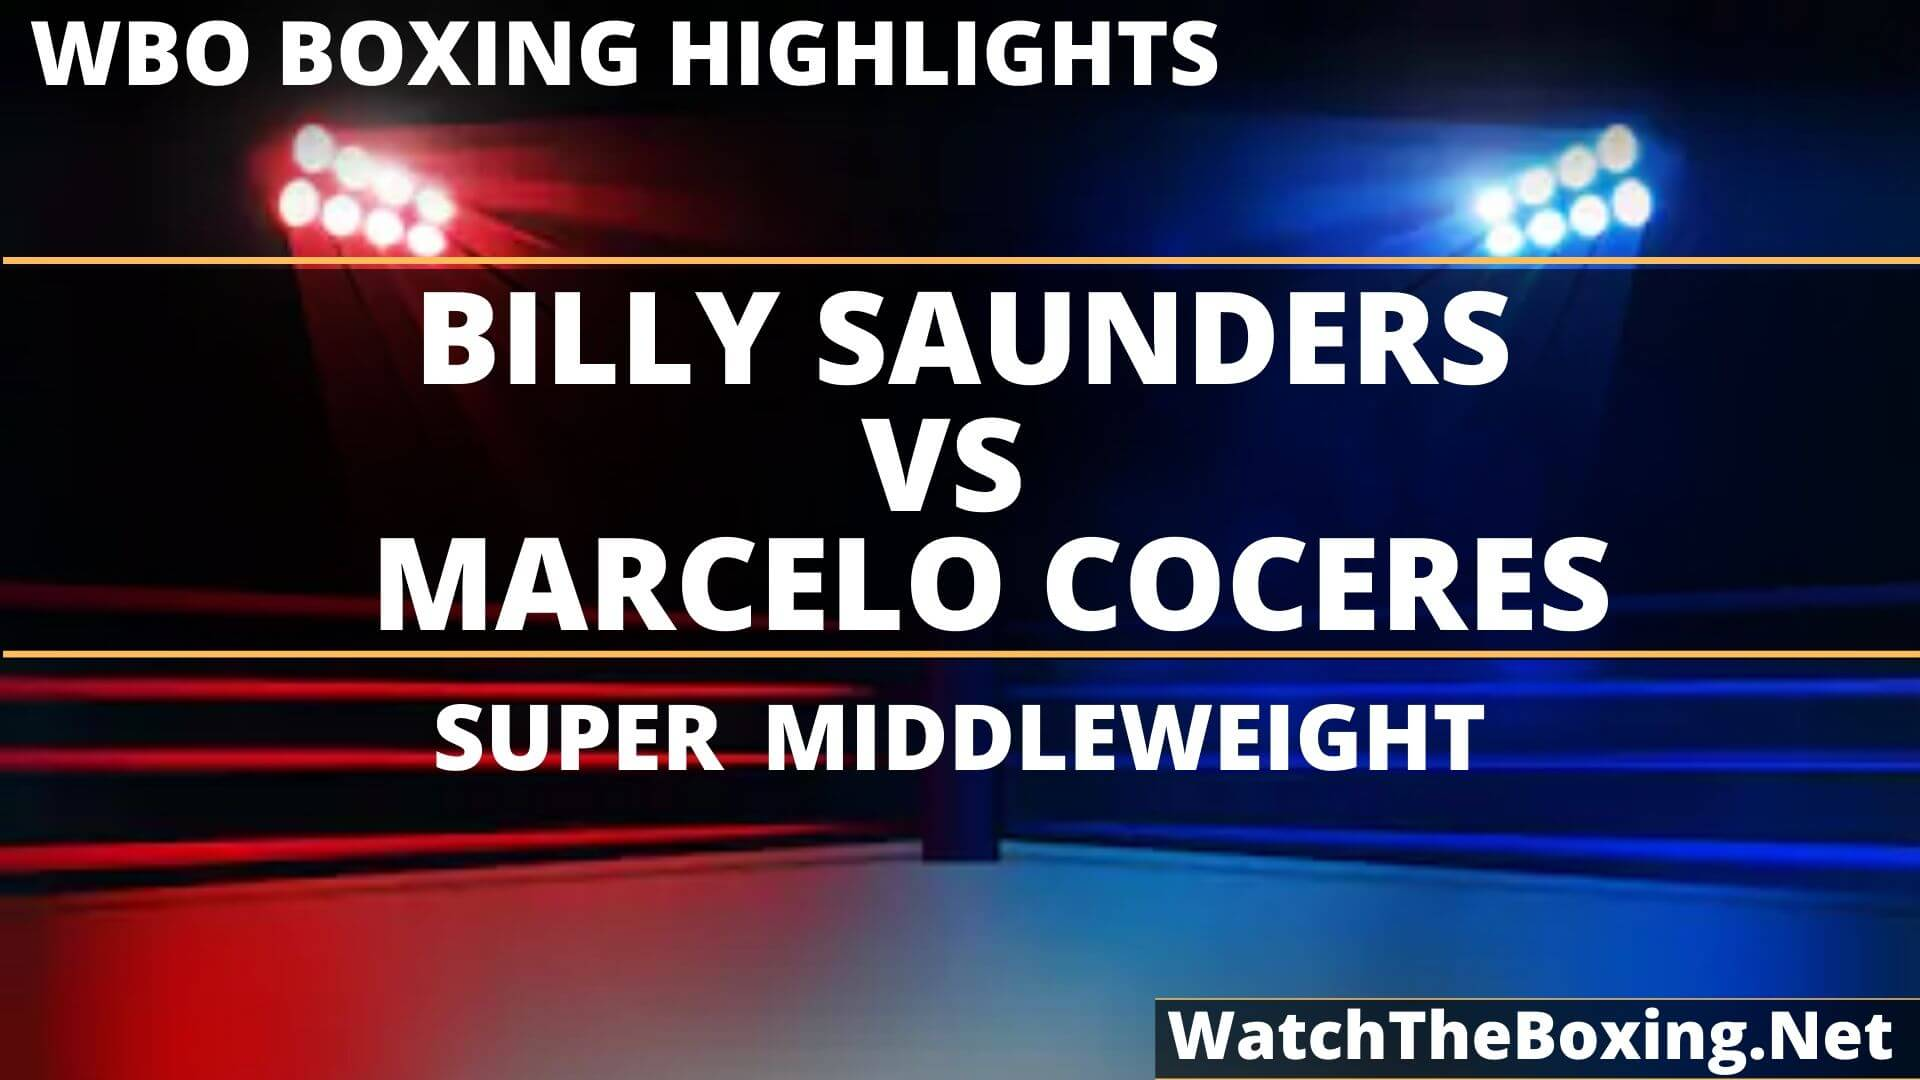 Billy Saunders Vs Marcelo Coceres Highlights 2019